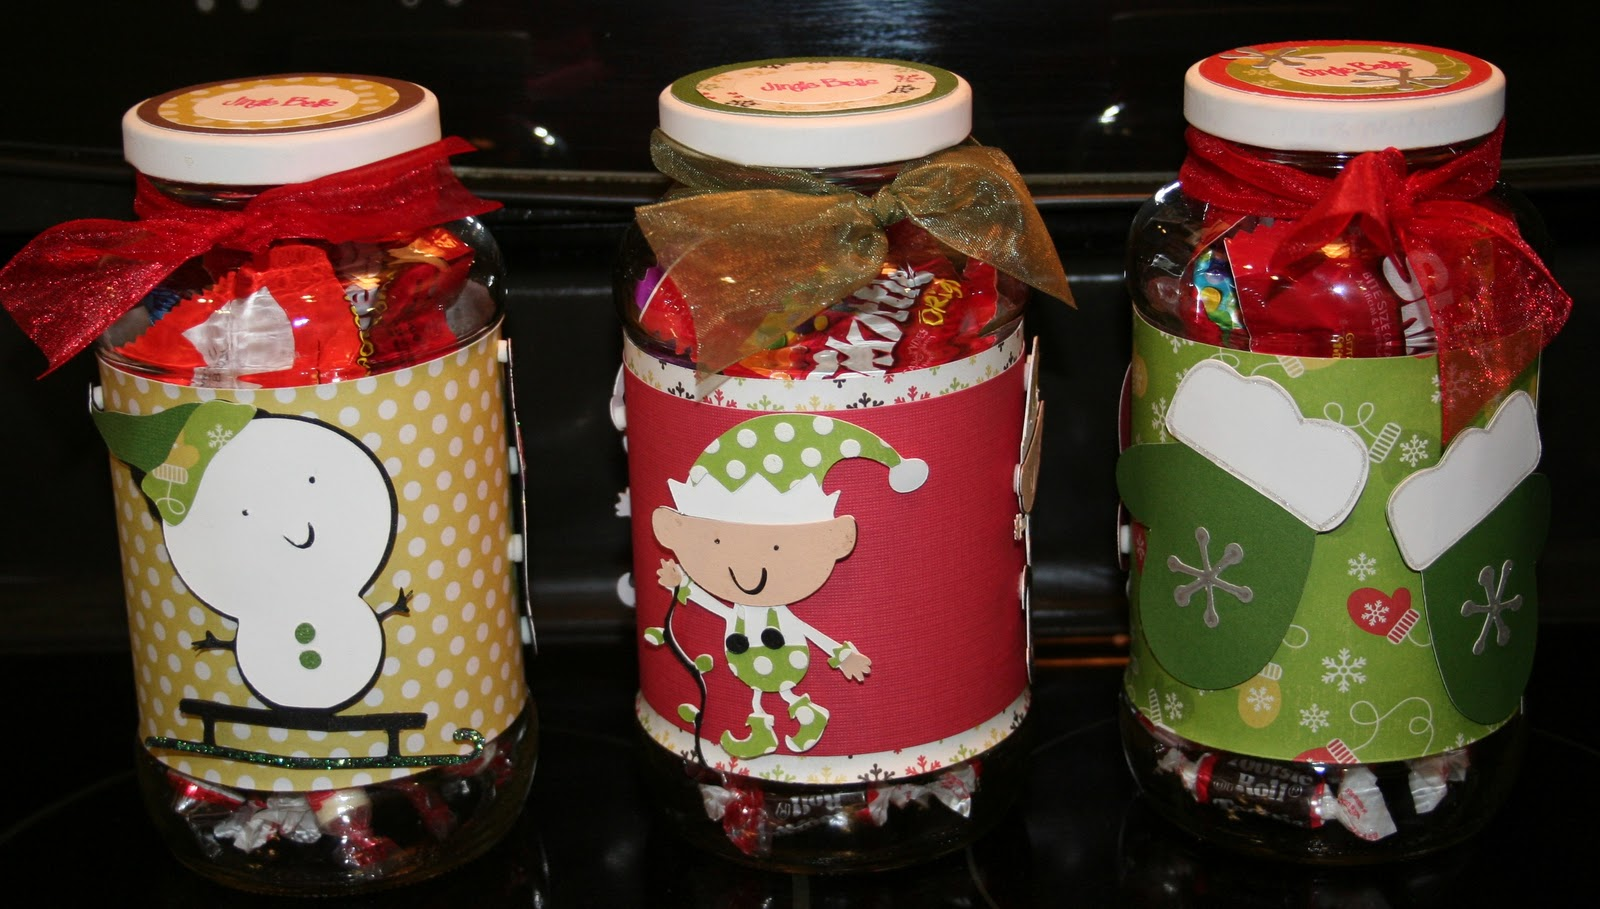 Deanne S Crafting Adventures Christmas Candy Gifts